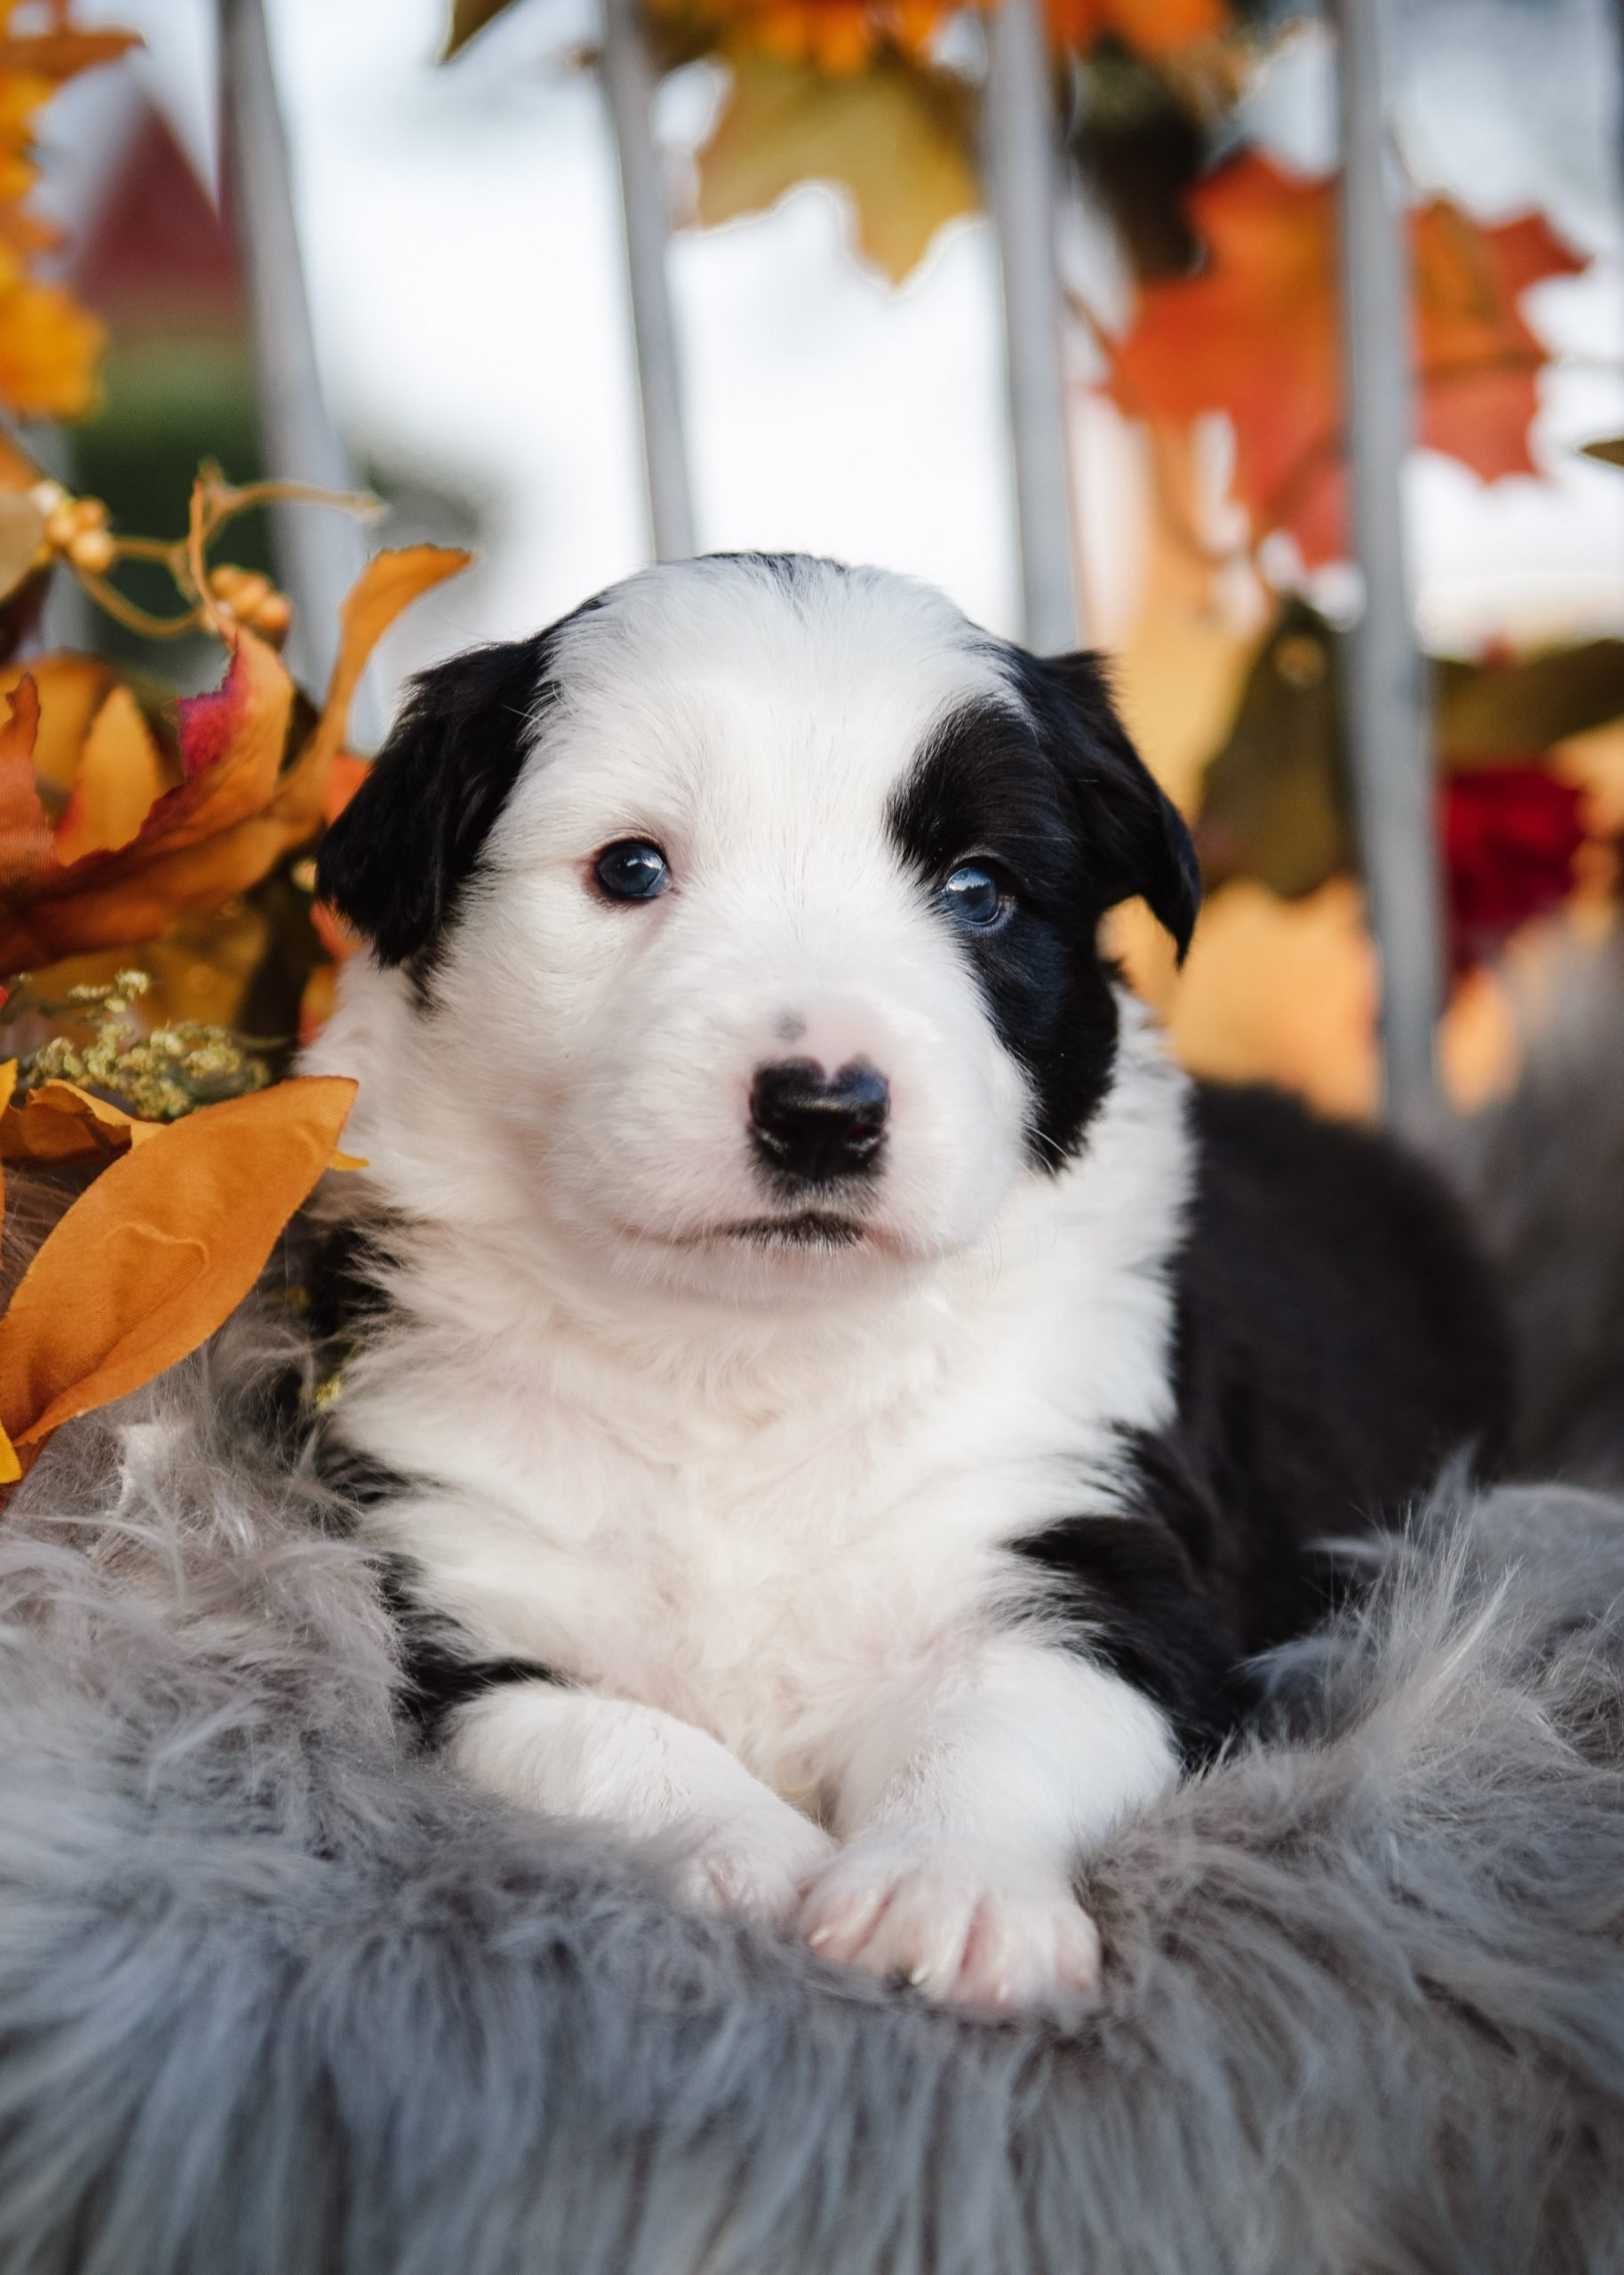 A black and white border collie puppy among the fall leaves.